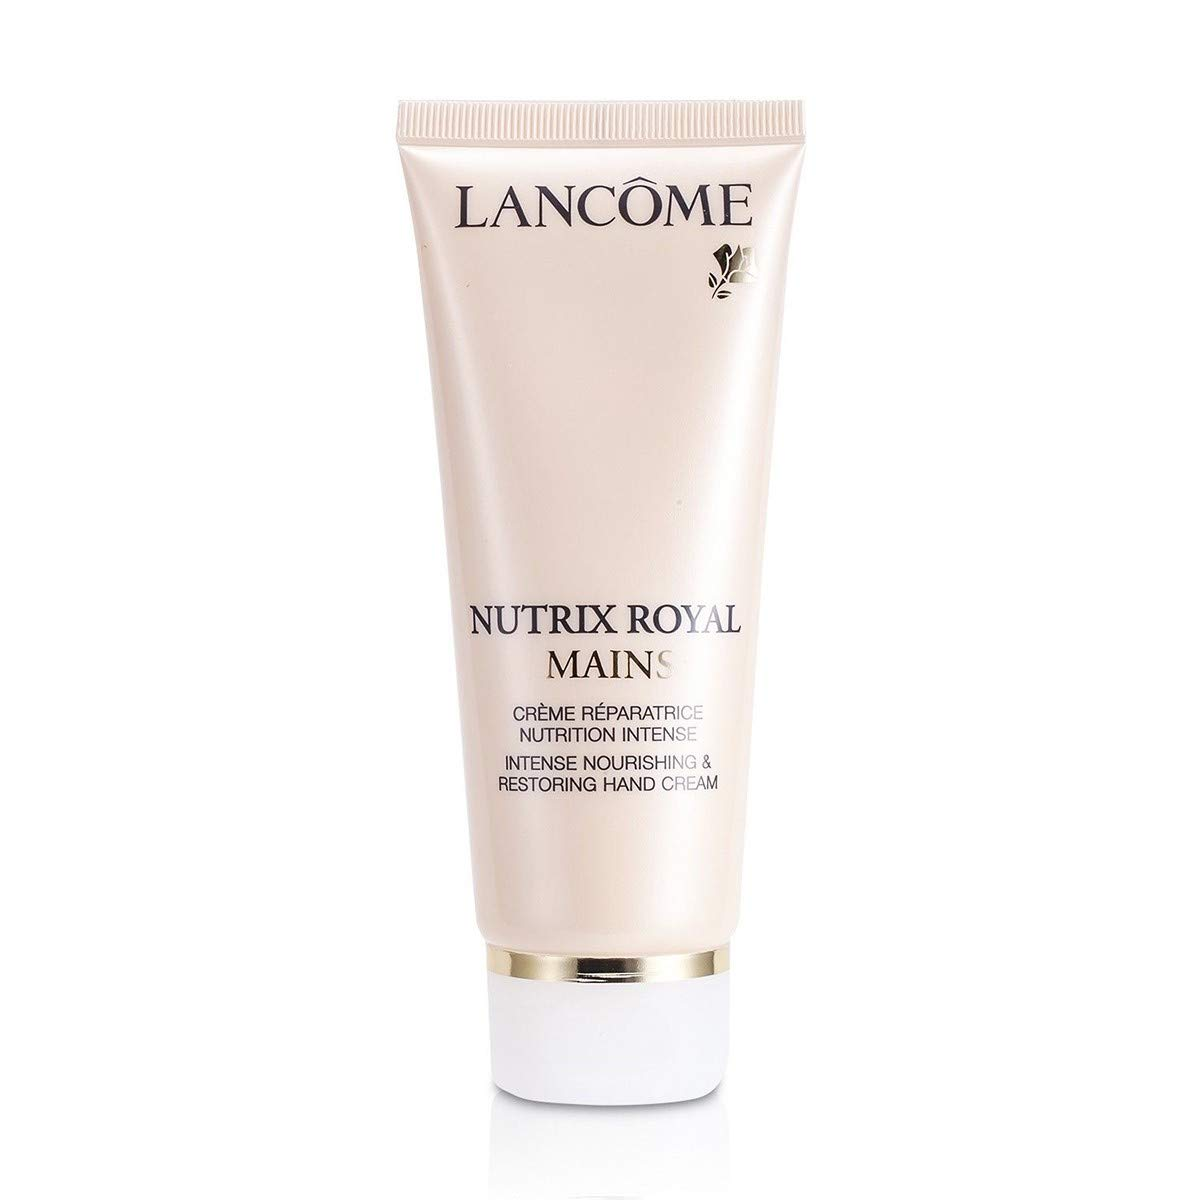 Lancôme Nutrix Royal Mains cream